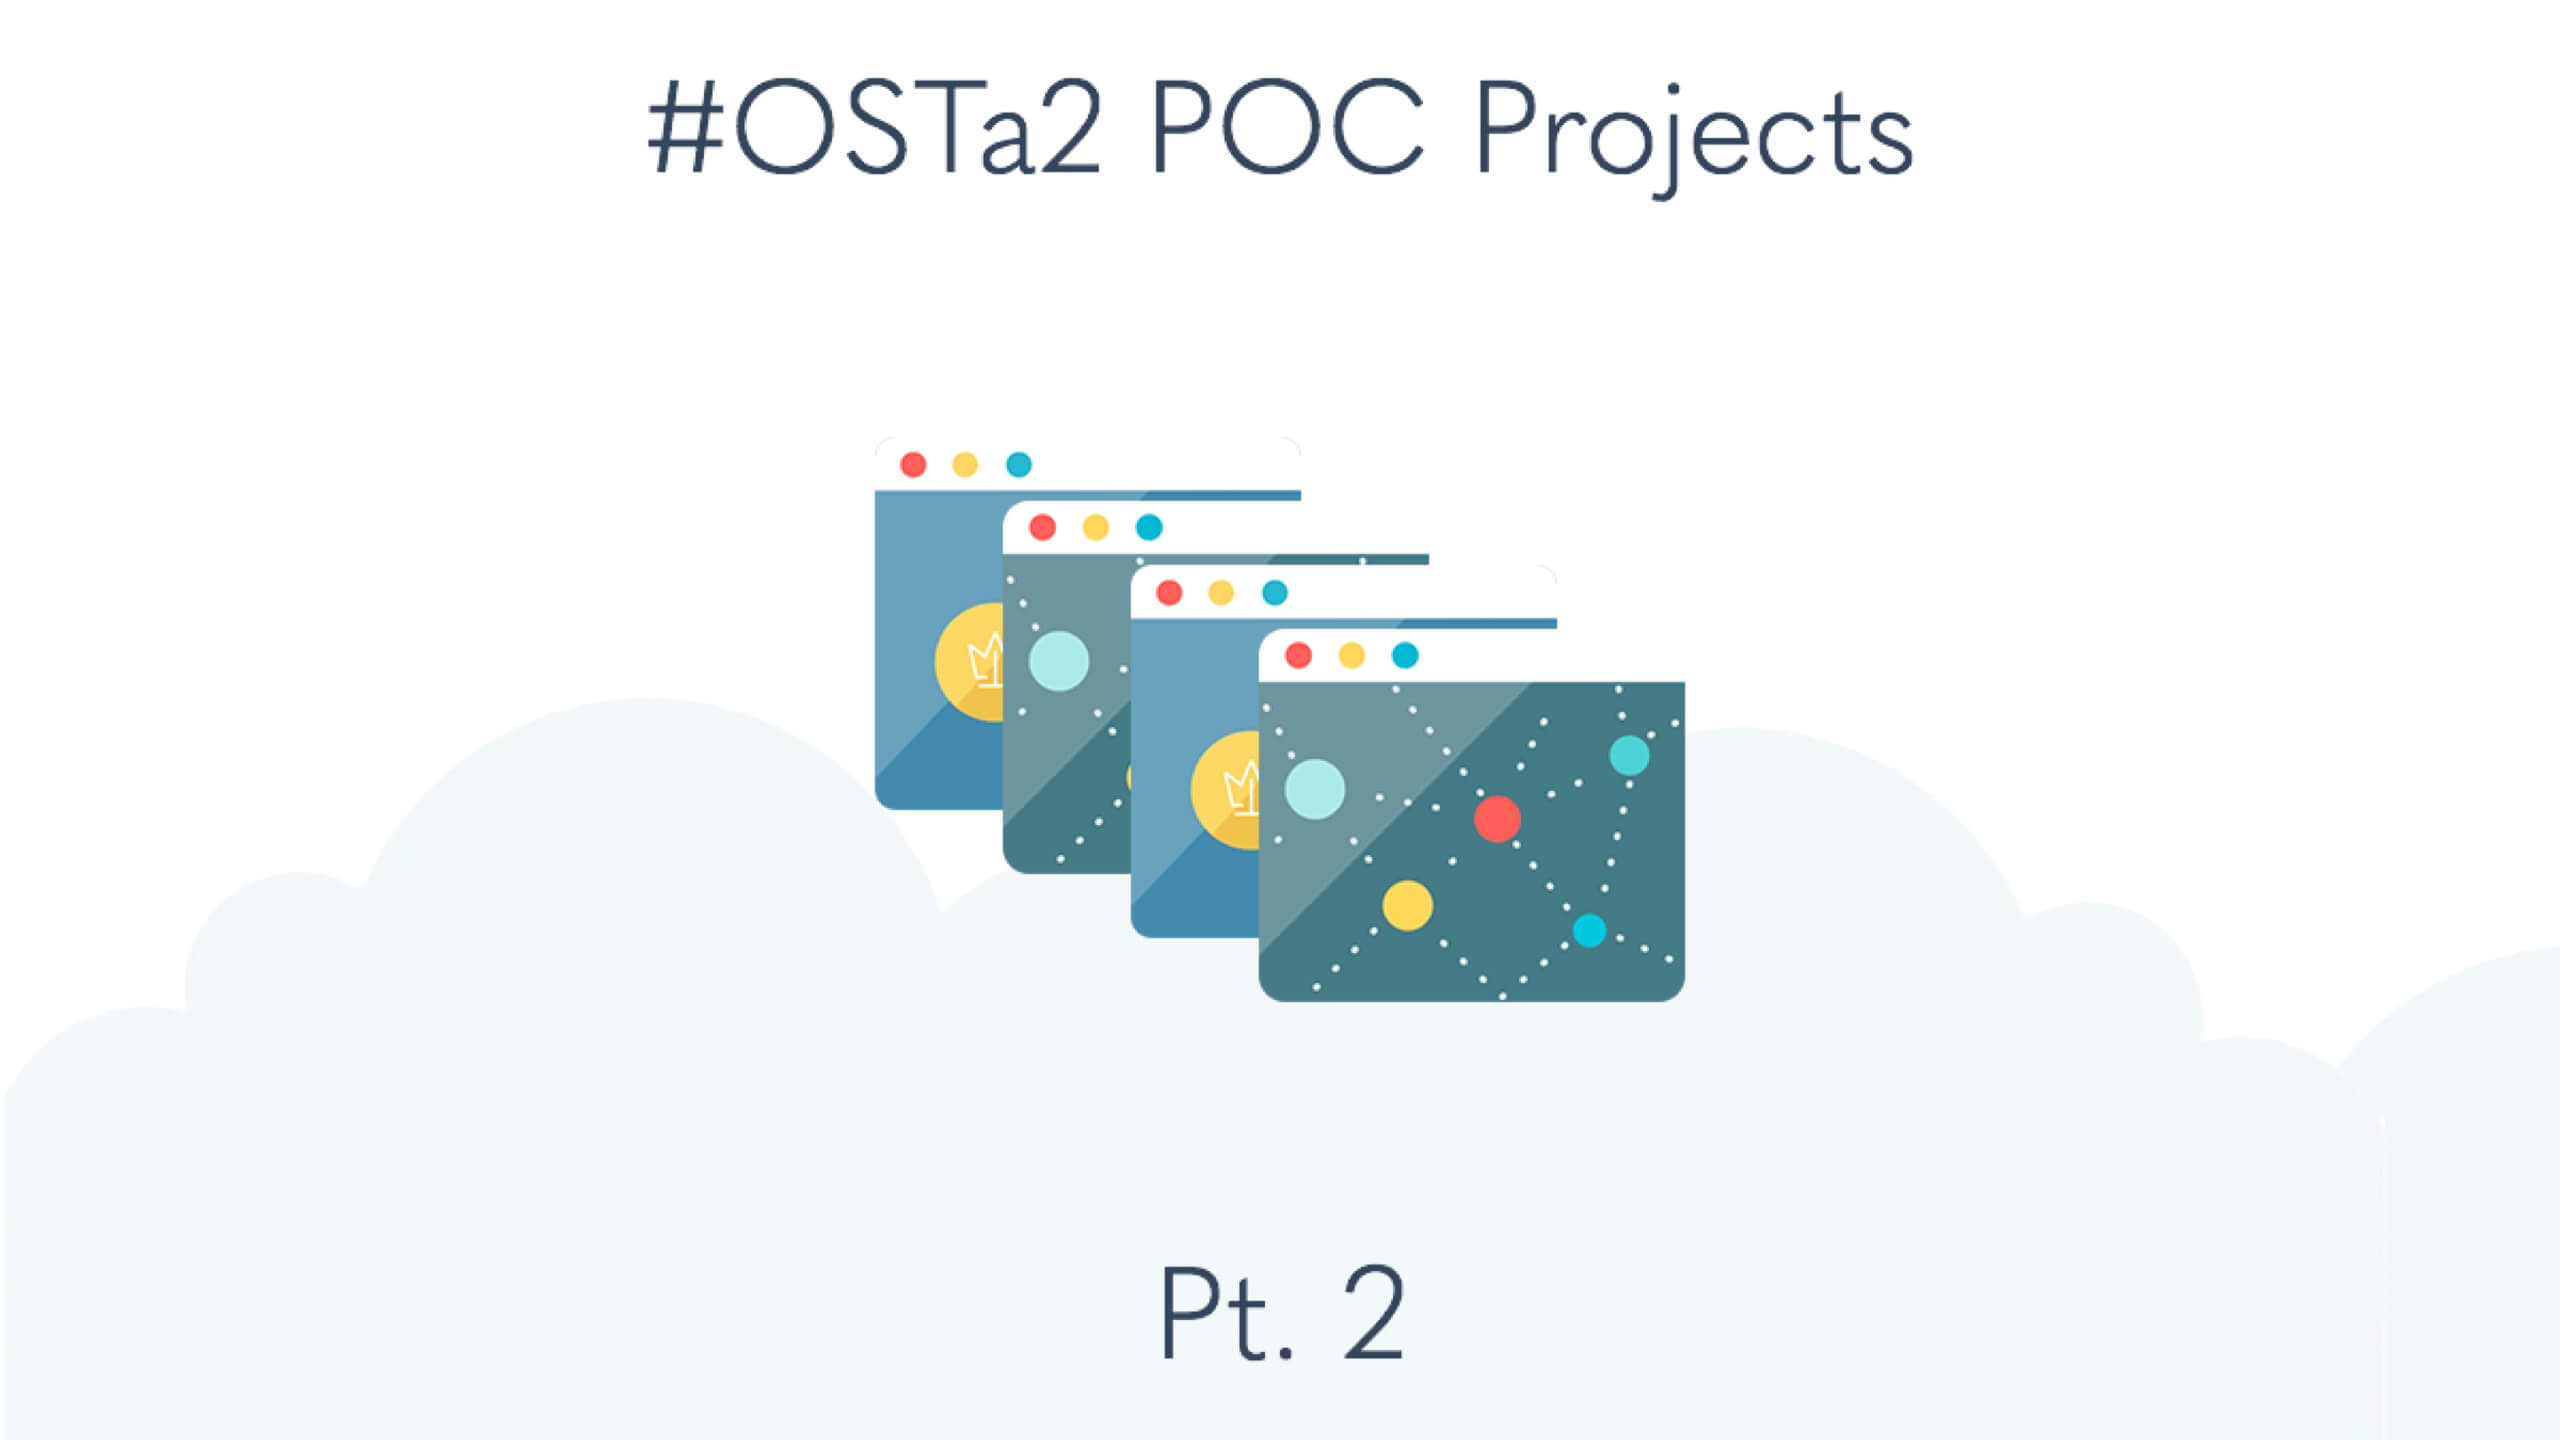 14 More #OSTa2 Projects (Pt. 2)